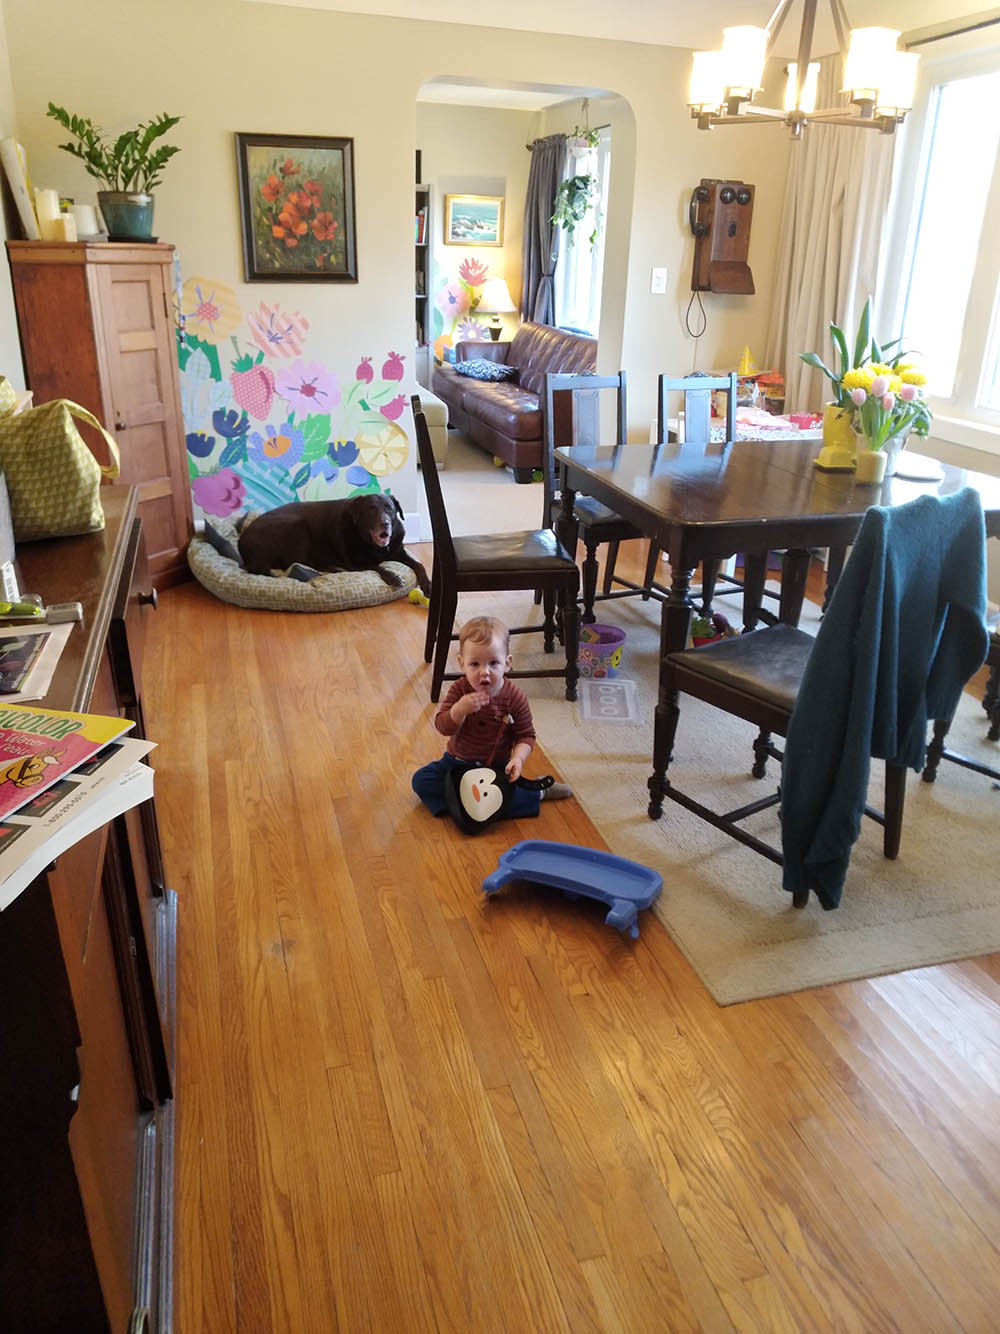 James playing in the dining room while I fold his laundry. He mostly stole his bib from his chair and chewed on it.